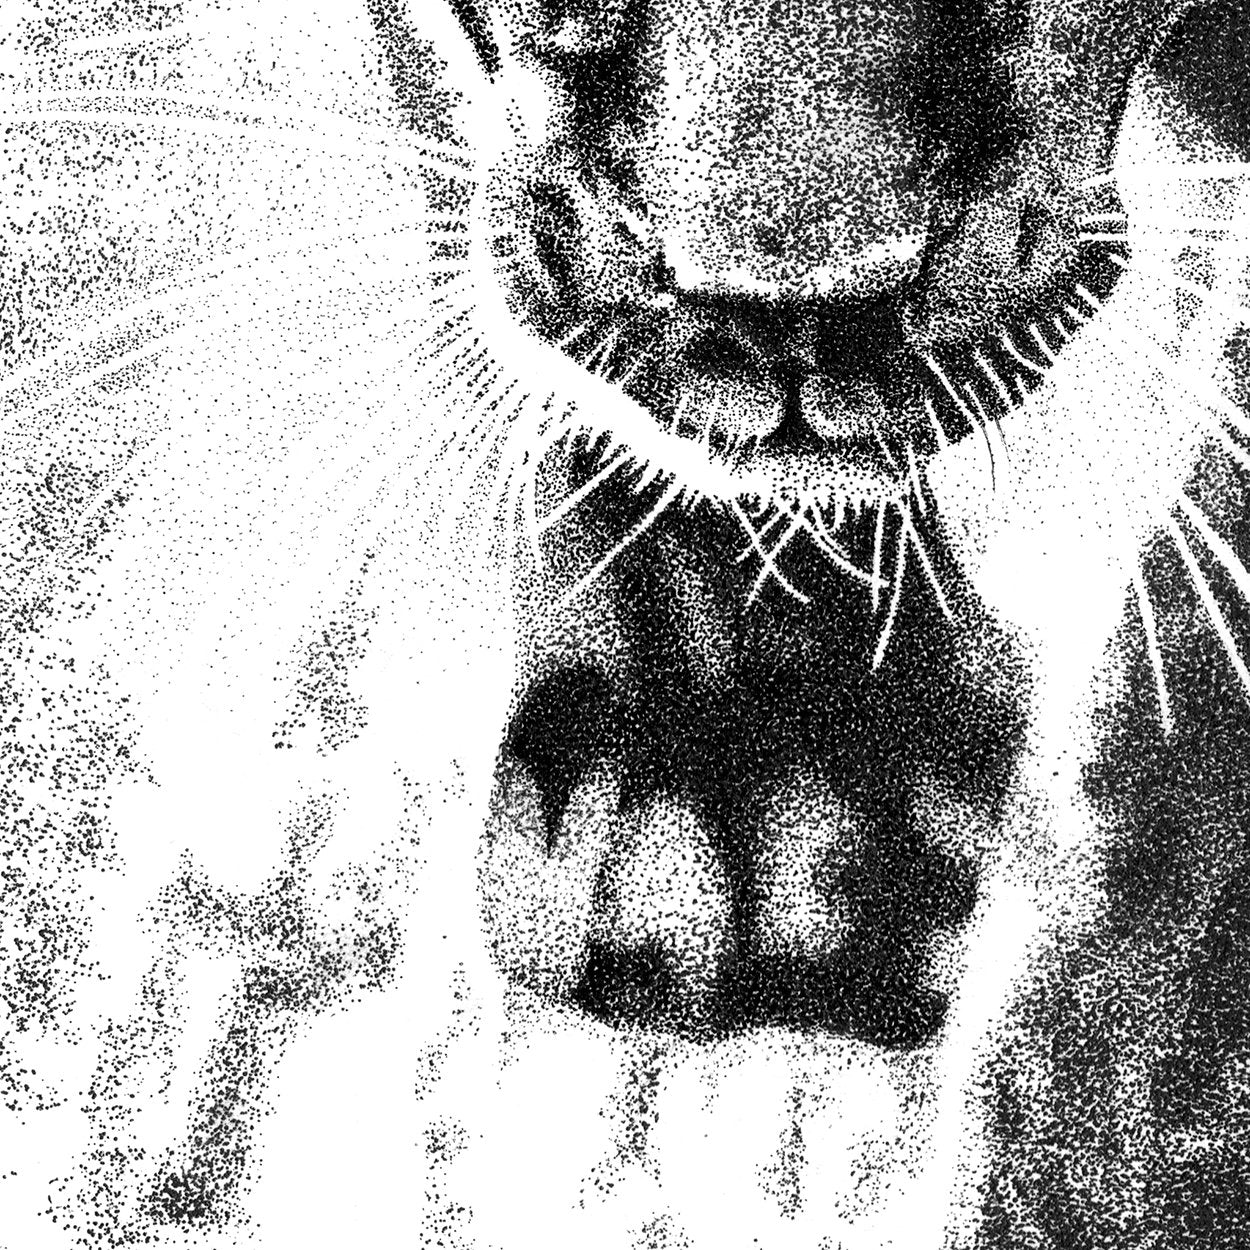 Black Leopard Pen Stippling Close-up - The Thriving Wild